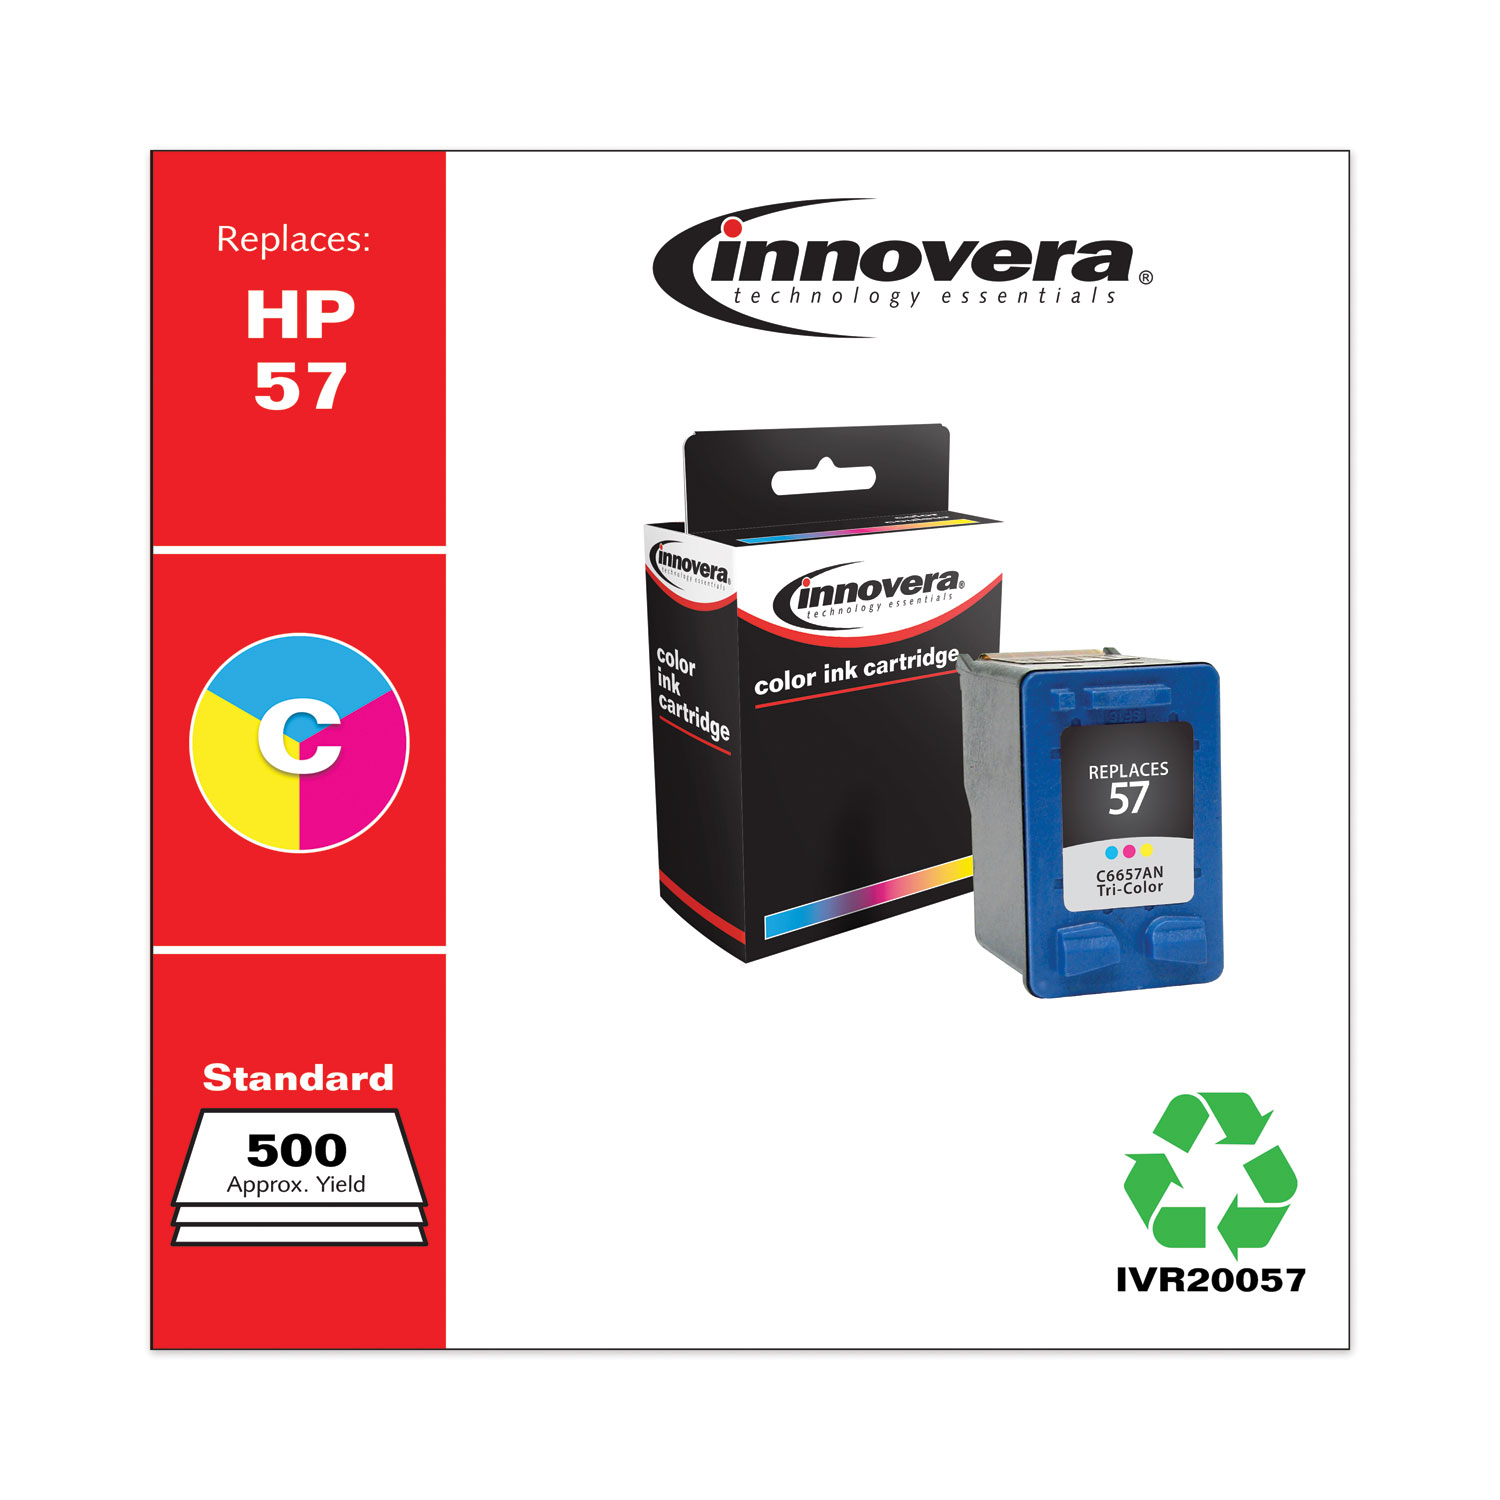 Remanufactured Tri-Color Ink, Replacement for HP 57 (C6657AN), 400 Page-Yield IVR20057